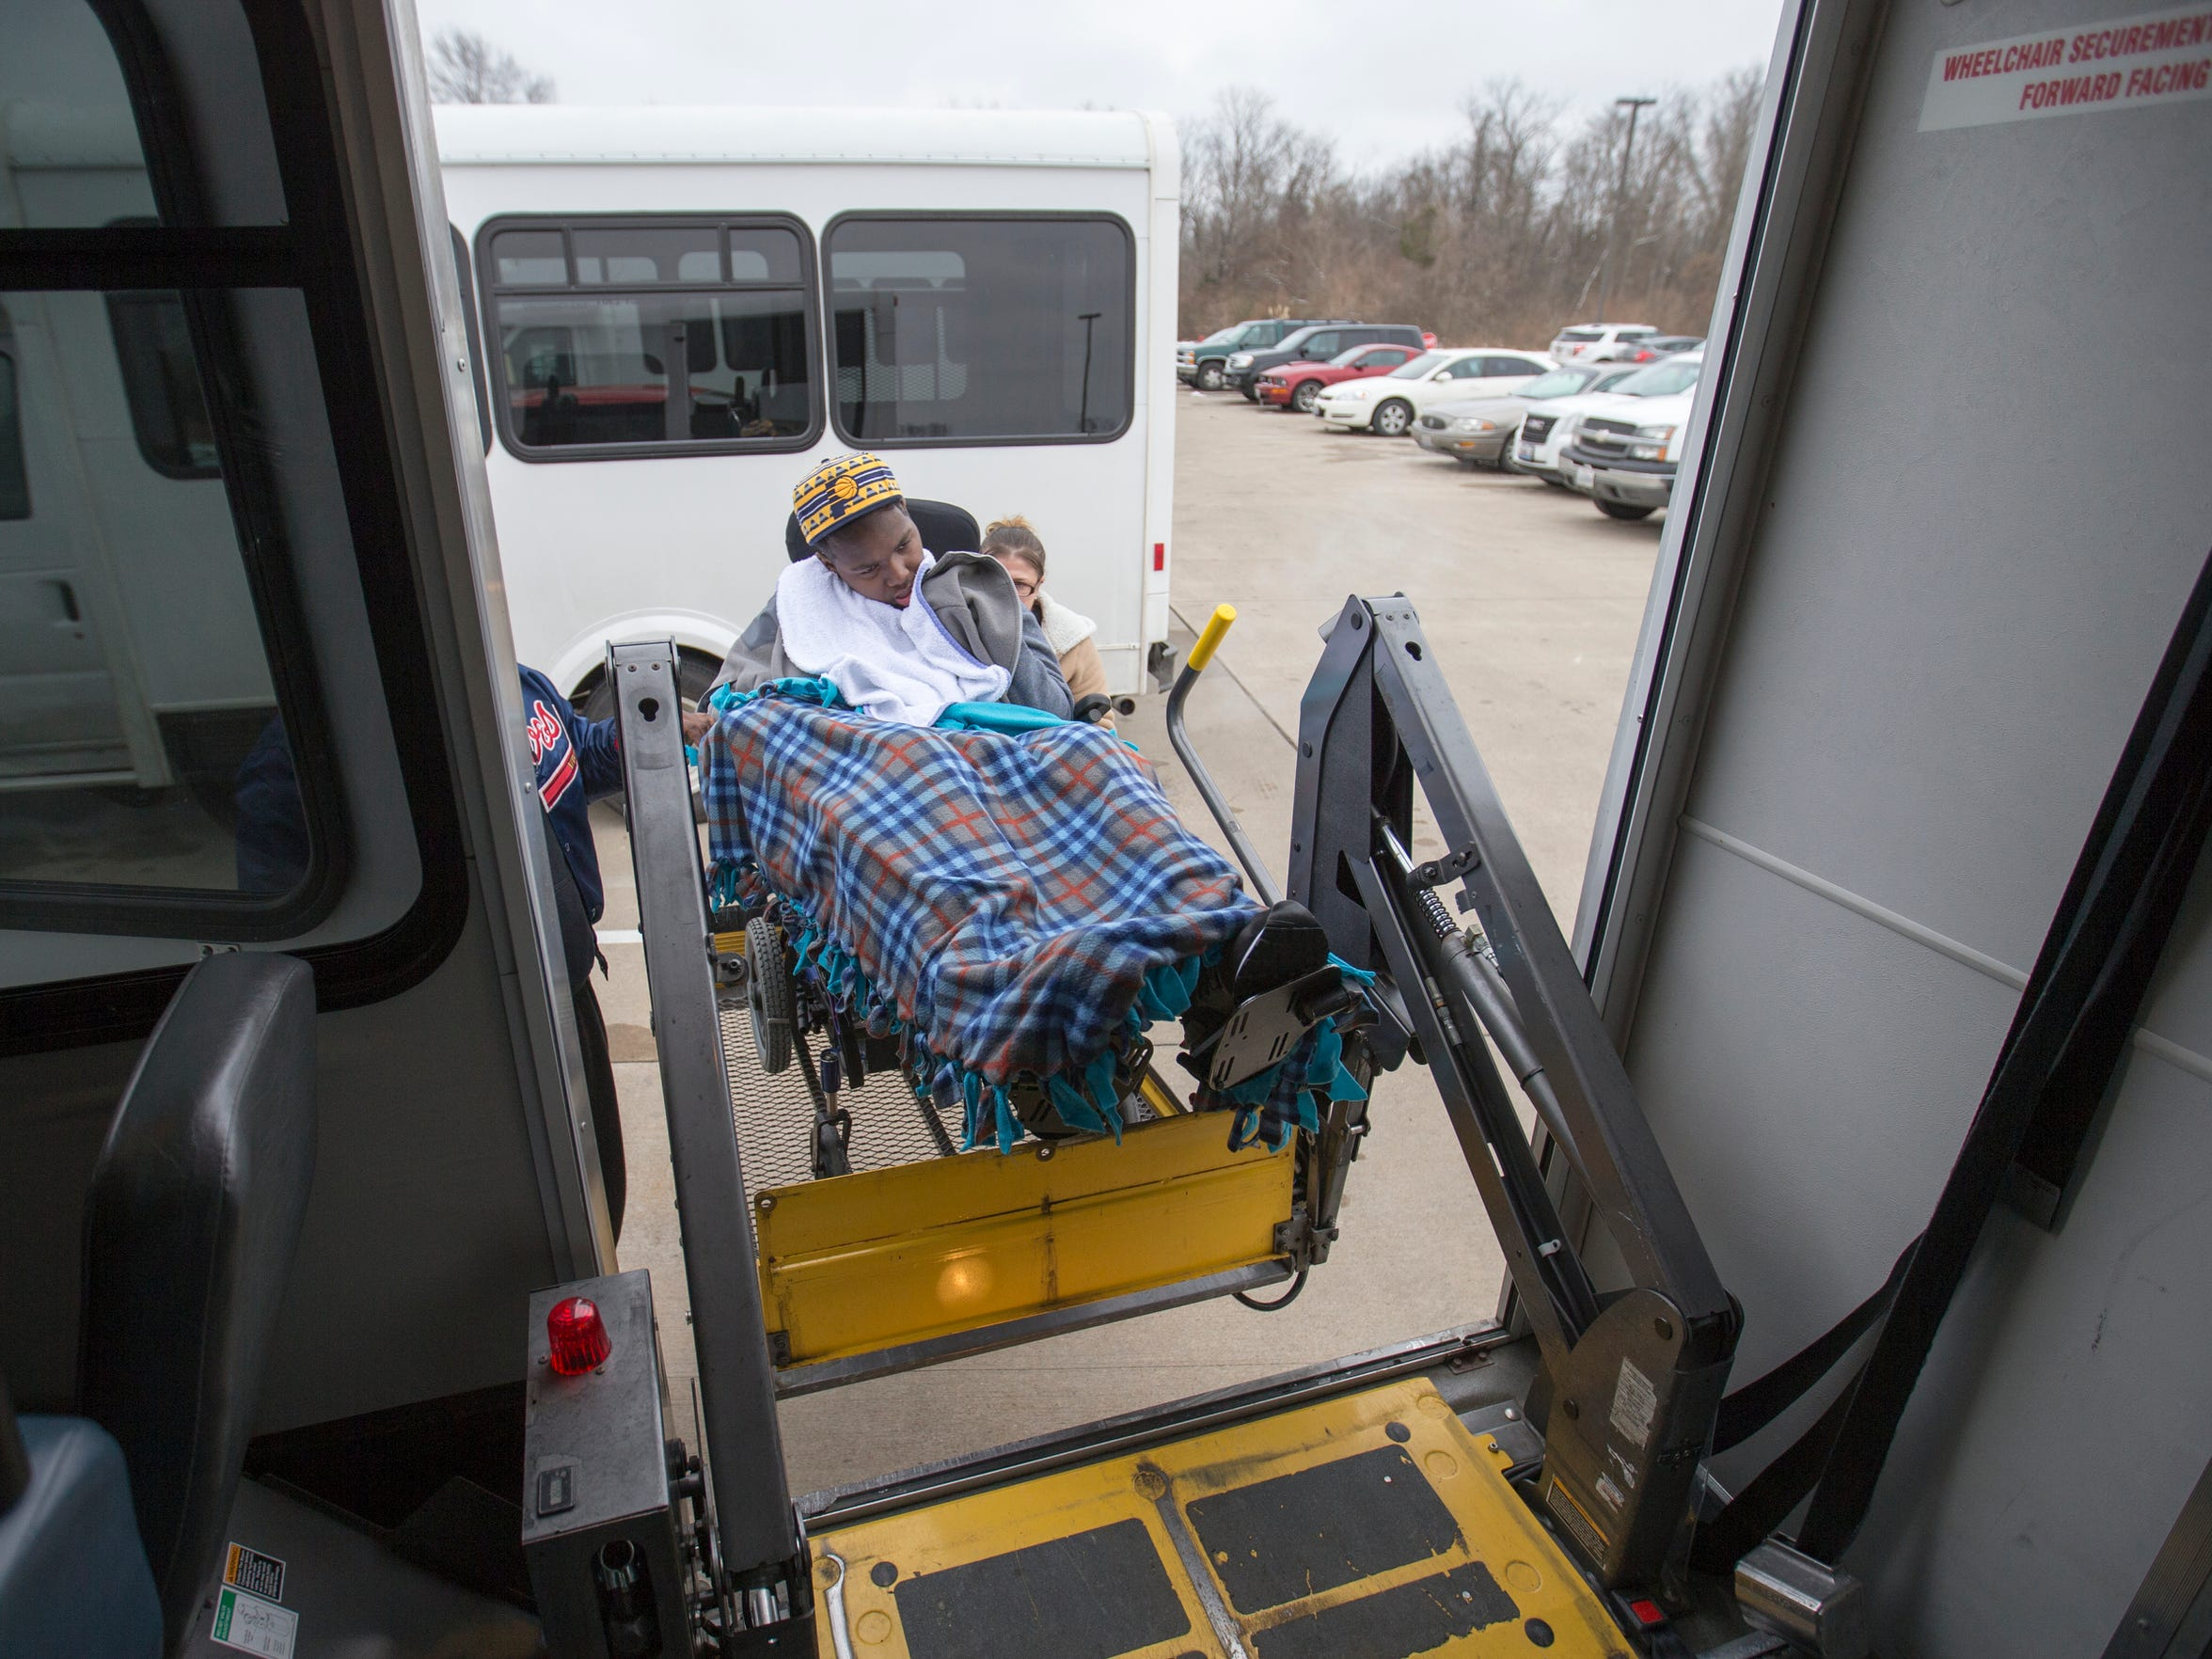 DeAndre Knox, 15, is loaded onto a van after treatment at Neuro Restorative, Carbondale, Ill., Thursday, January 21, 2016. Knox was shot in 2014, and has a long road of physical therapy ahead.